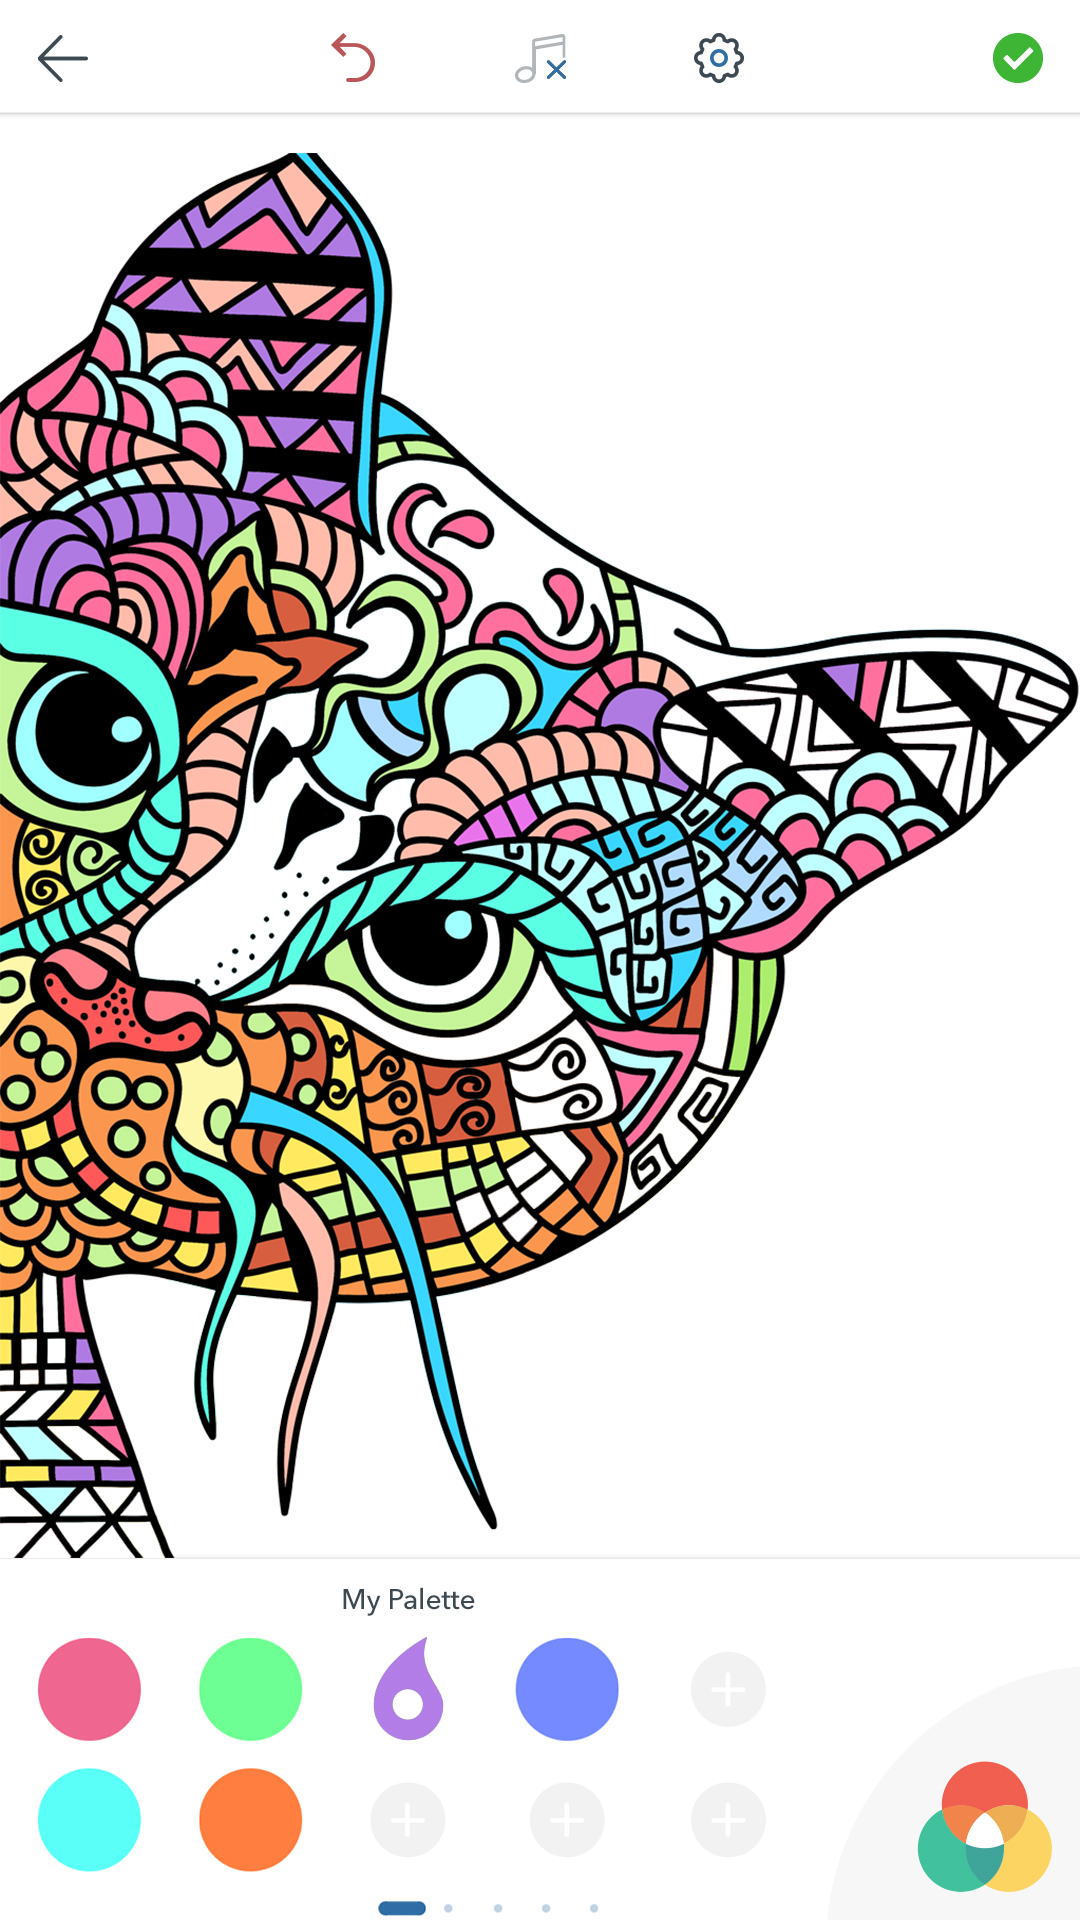 Cat coloring pages for adults appstore for Coloring books for adults on amazon